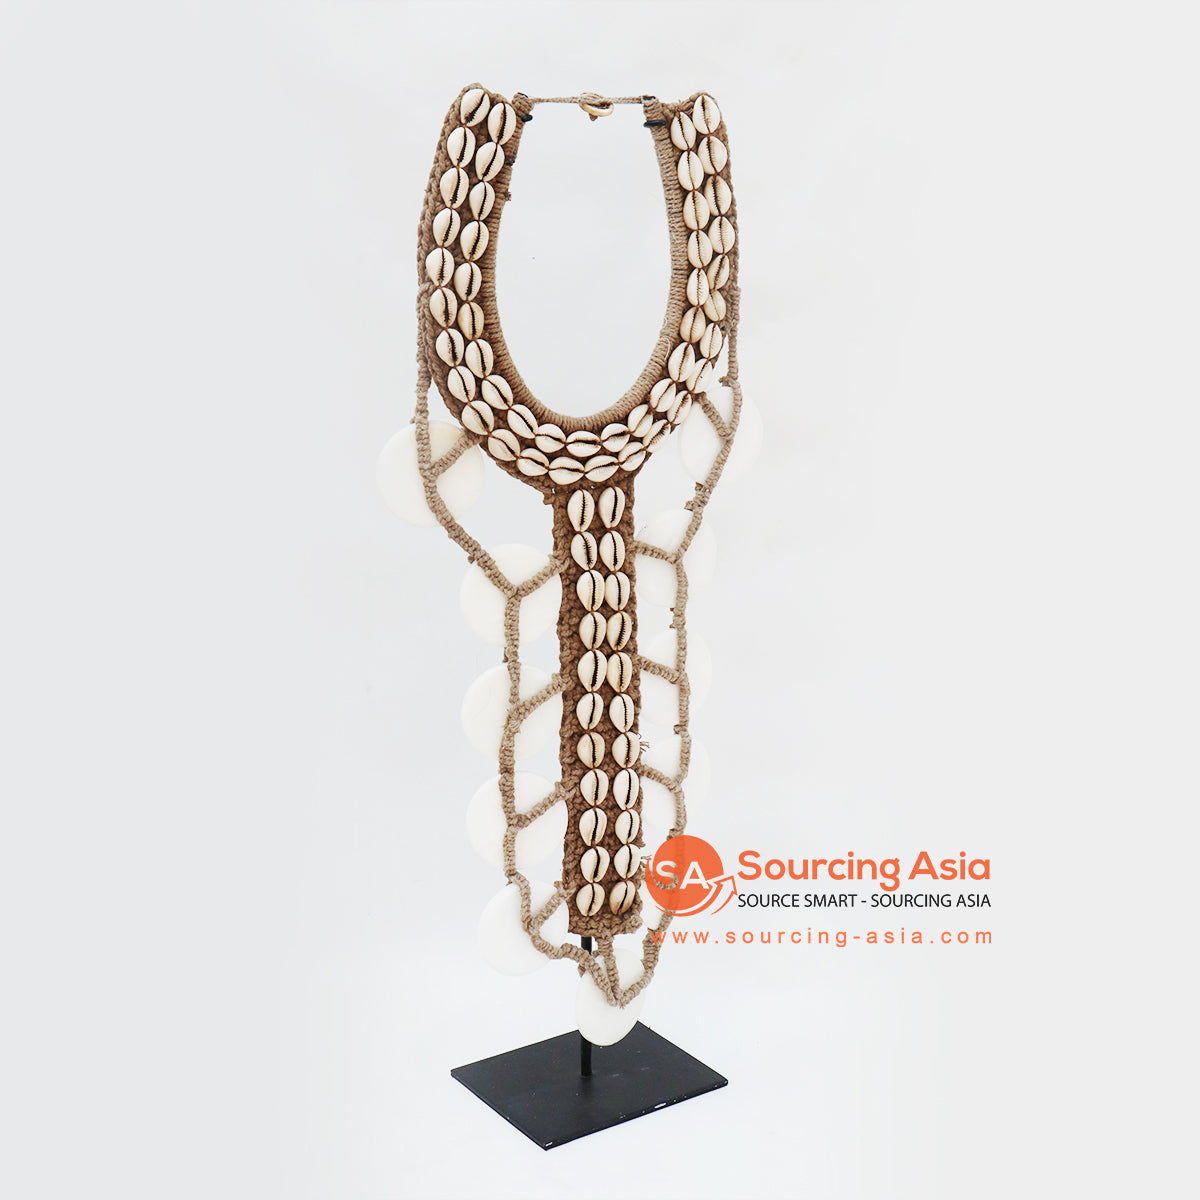 KNTC081 PAPUA SHELL NECKLACE ON STAND